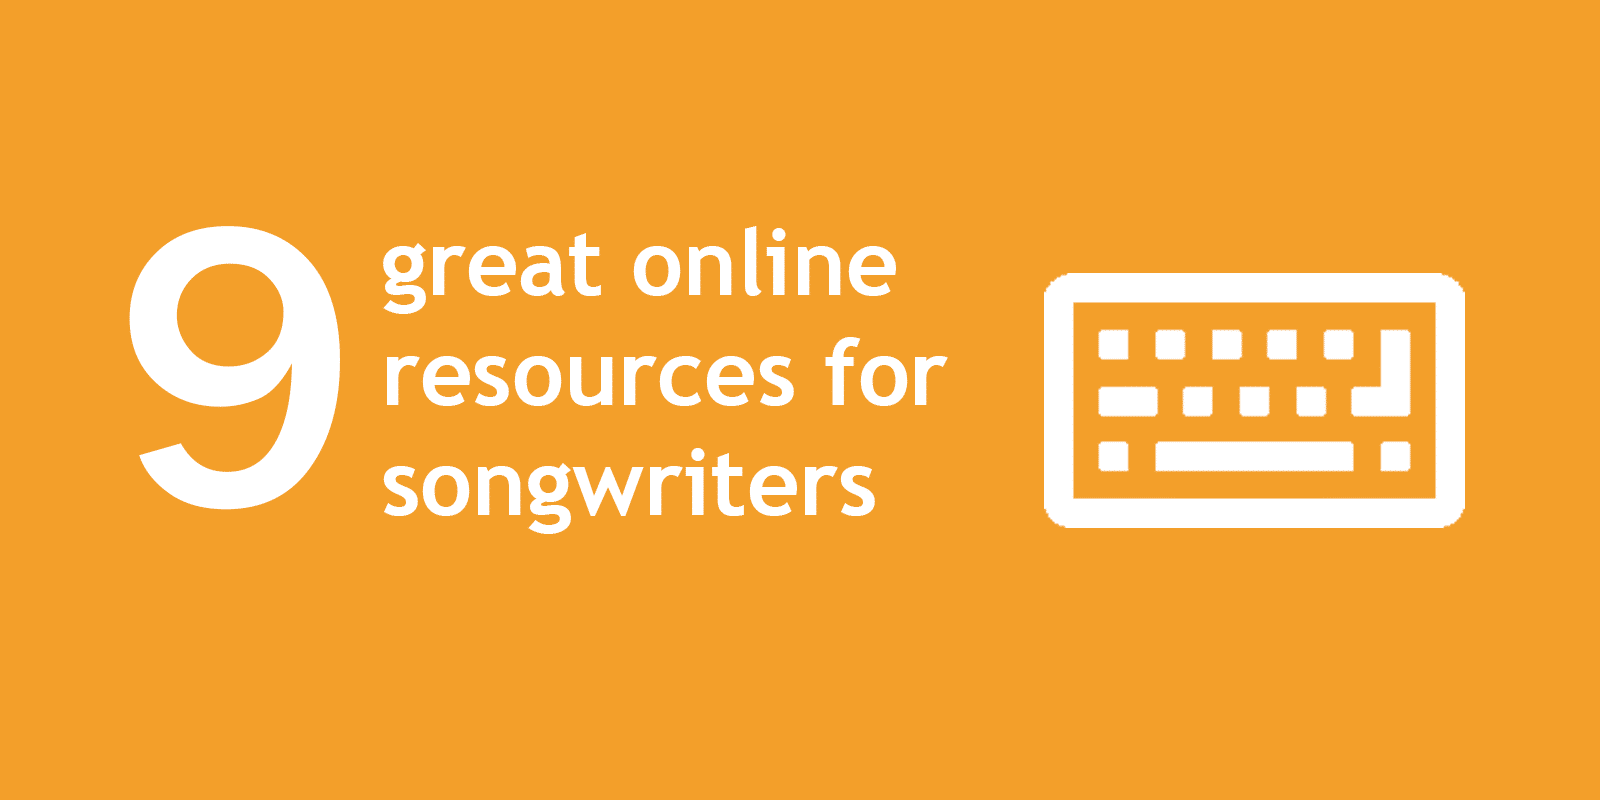 9 great online resources for songwriters